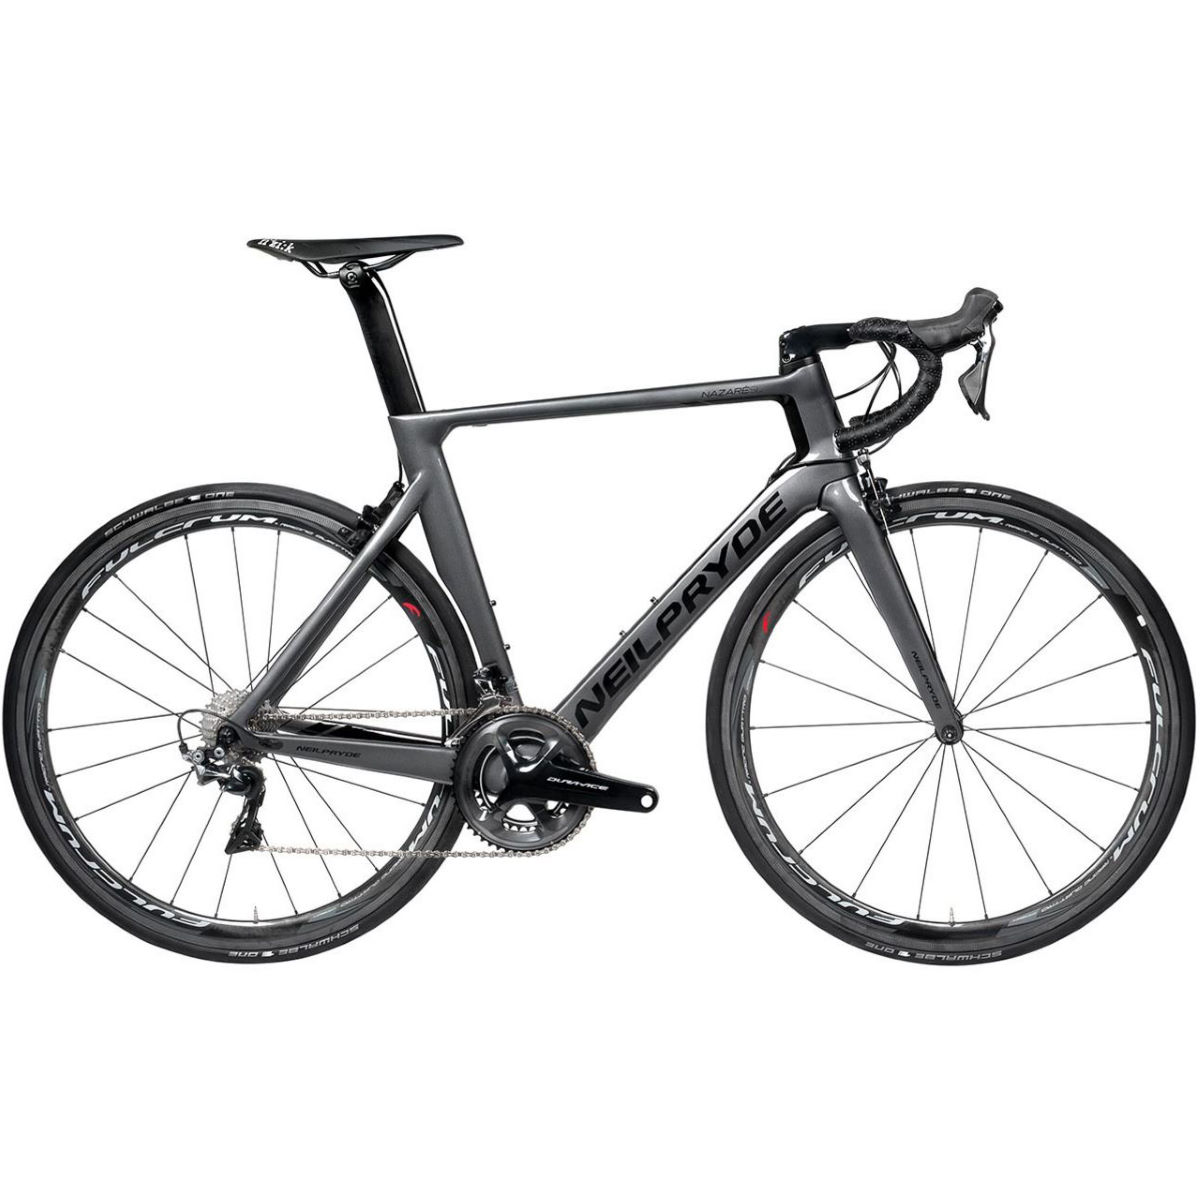 Vélo de route NeilPryde Nazare SL (DuraAce, 2017) - Medium Stock Bike